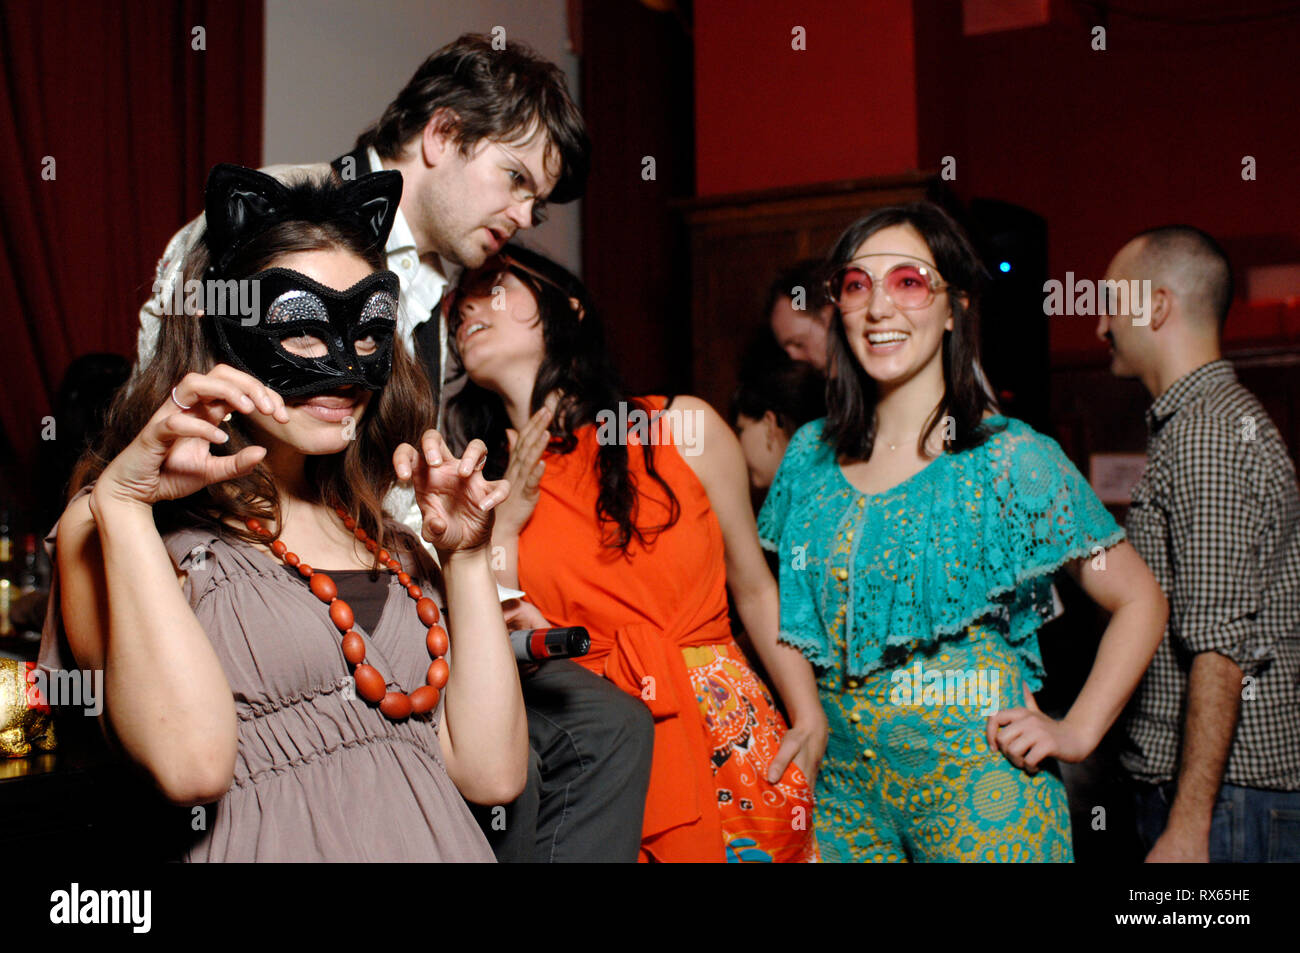 Club night 'Warped' at The Mission Room,London. 29.03.08 - Stock Image